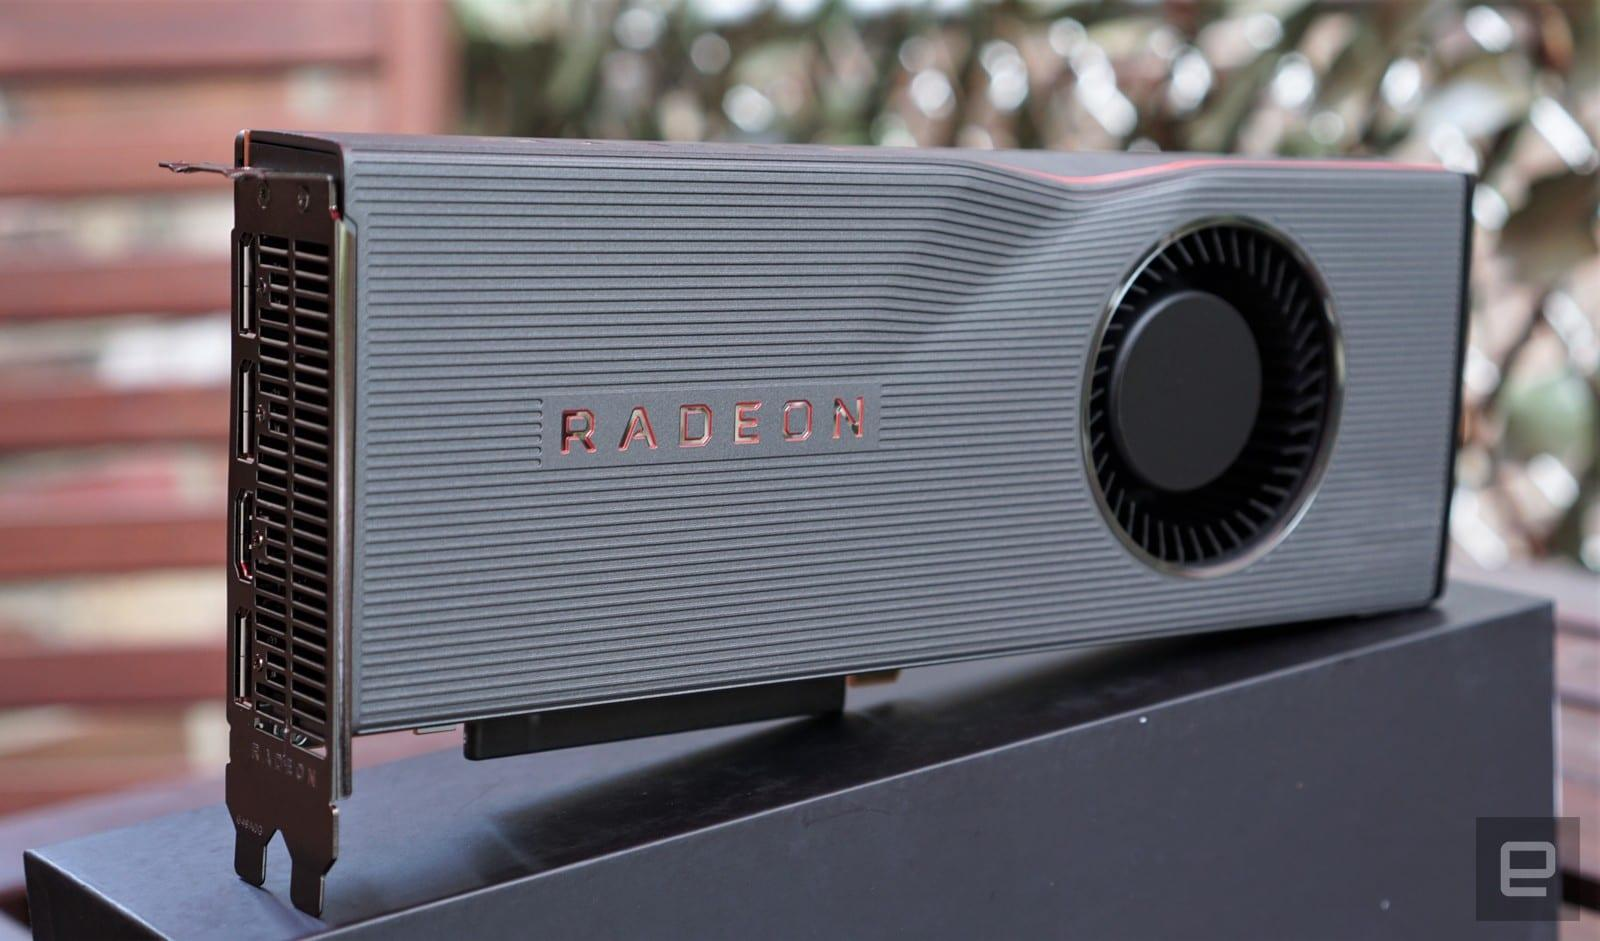 Radeon RX 5700 and 5700 XT review: AMD brings the fight back to NVIDIA | Engadget